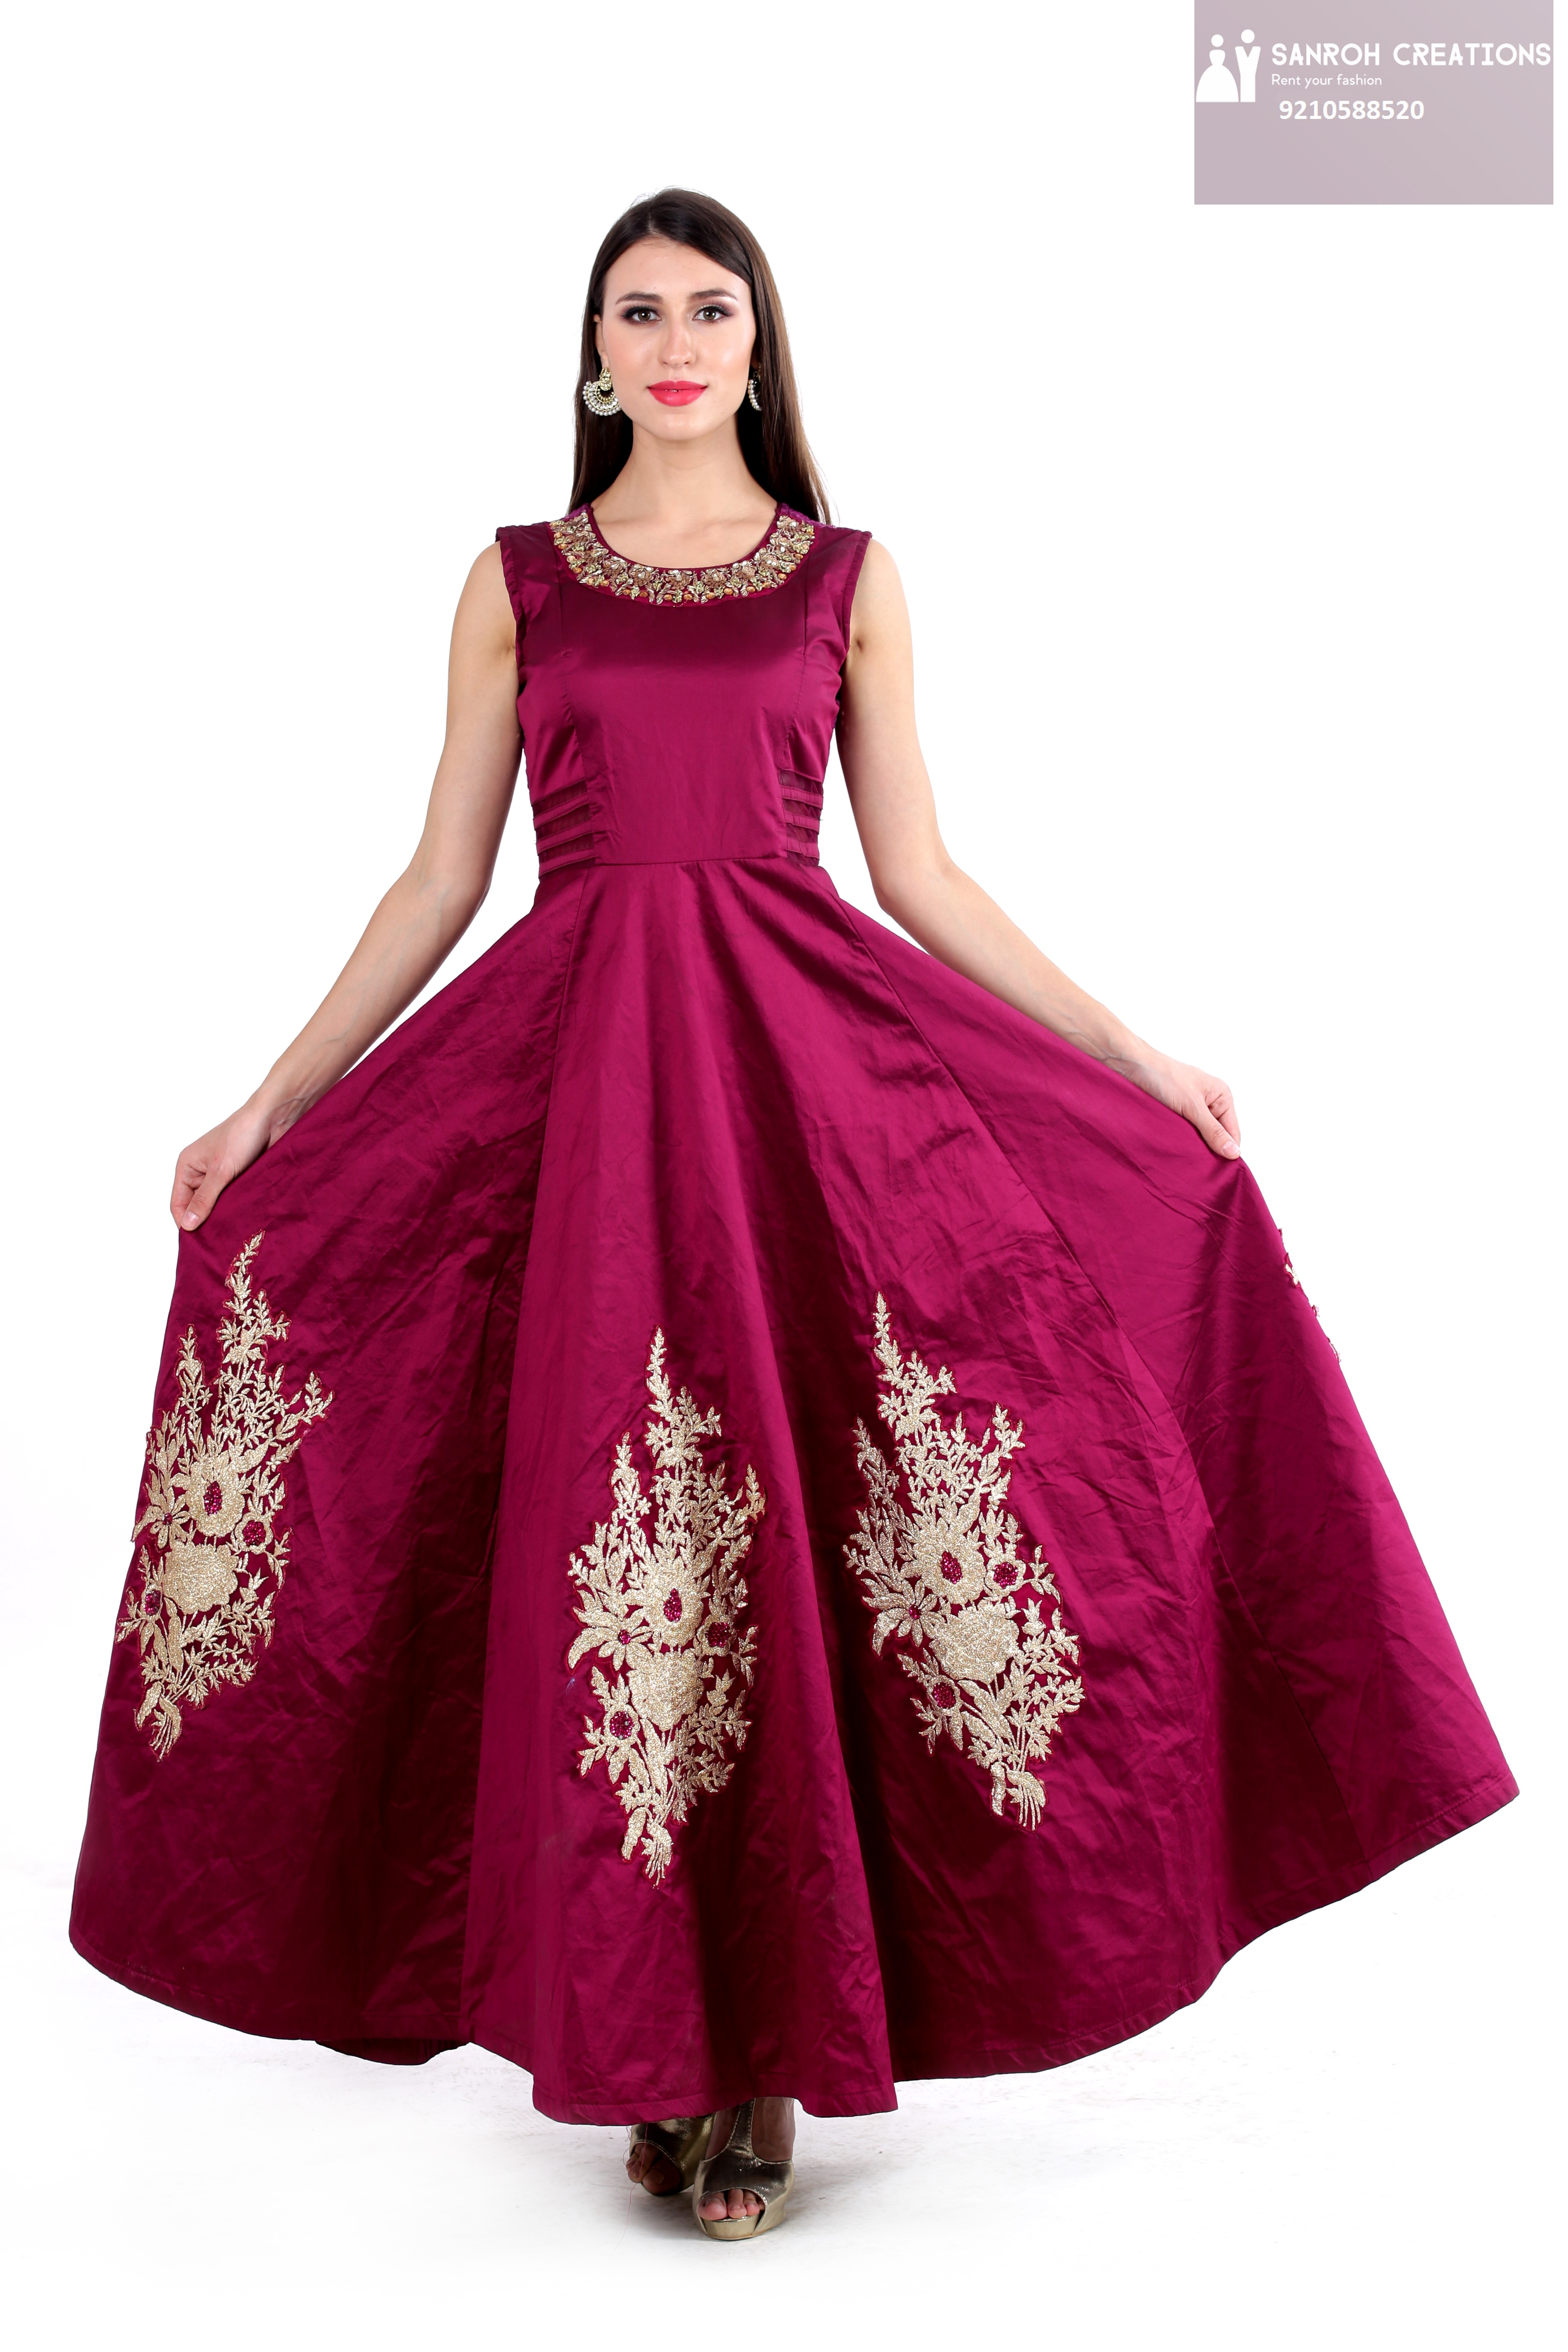 party wear dresses for girl on rent in Gurgaon sector 29